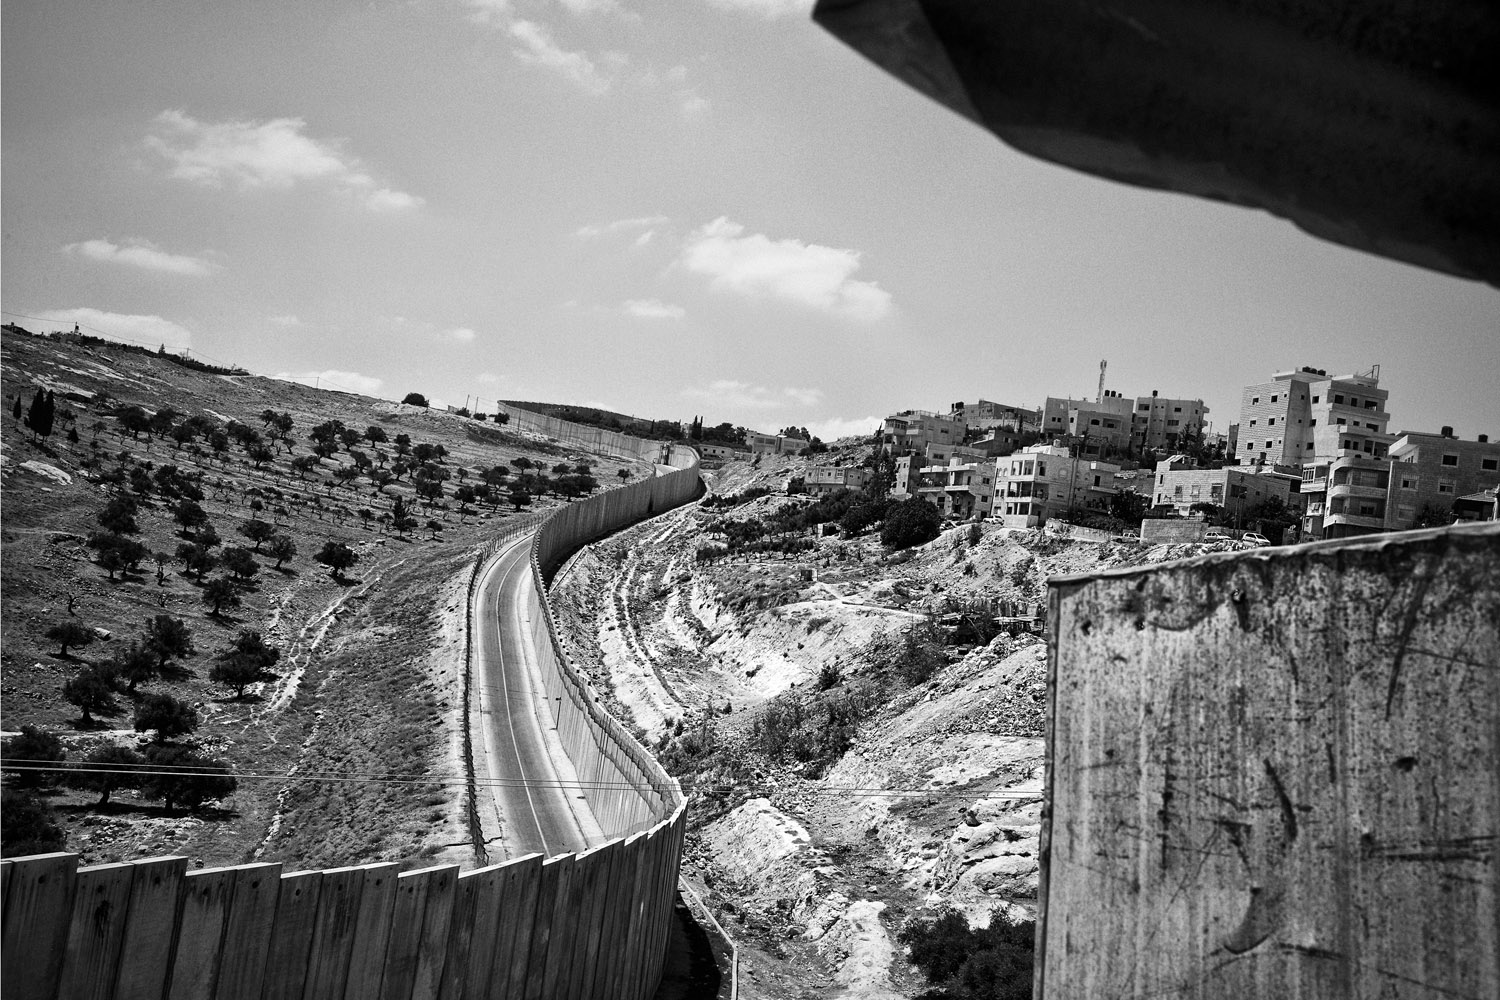 The separation wall in Abu Dis, West Bank, June 14, 2013.